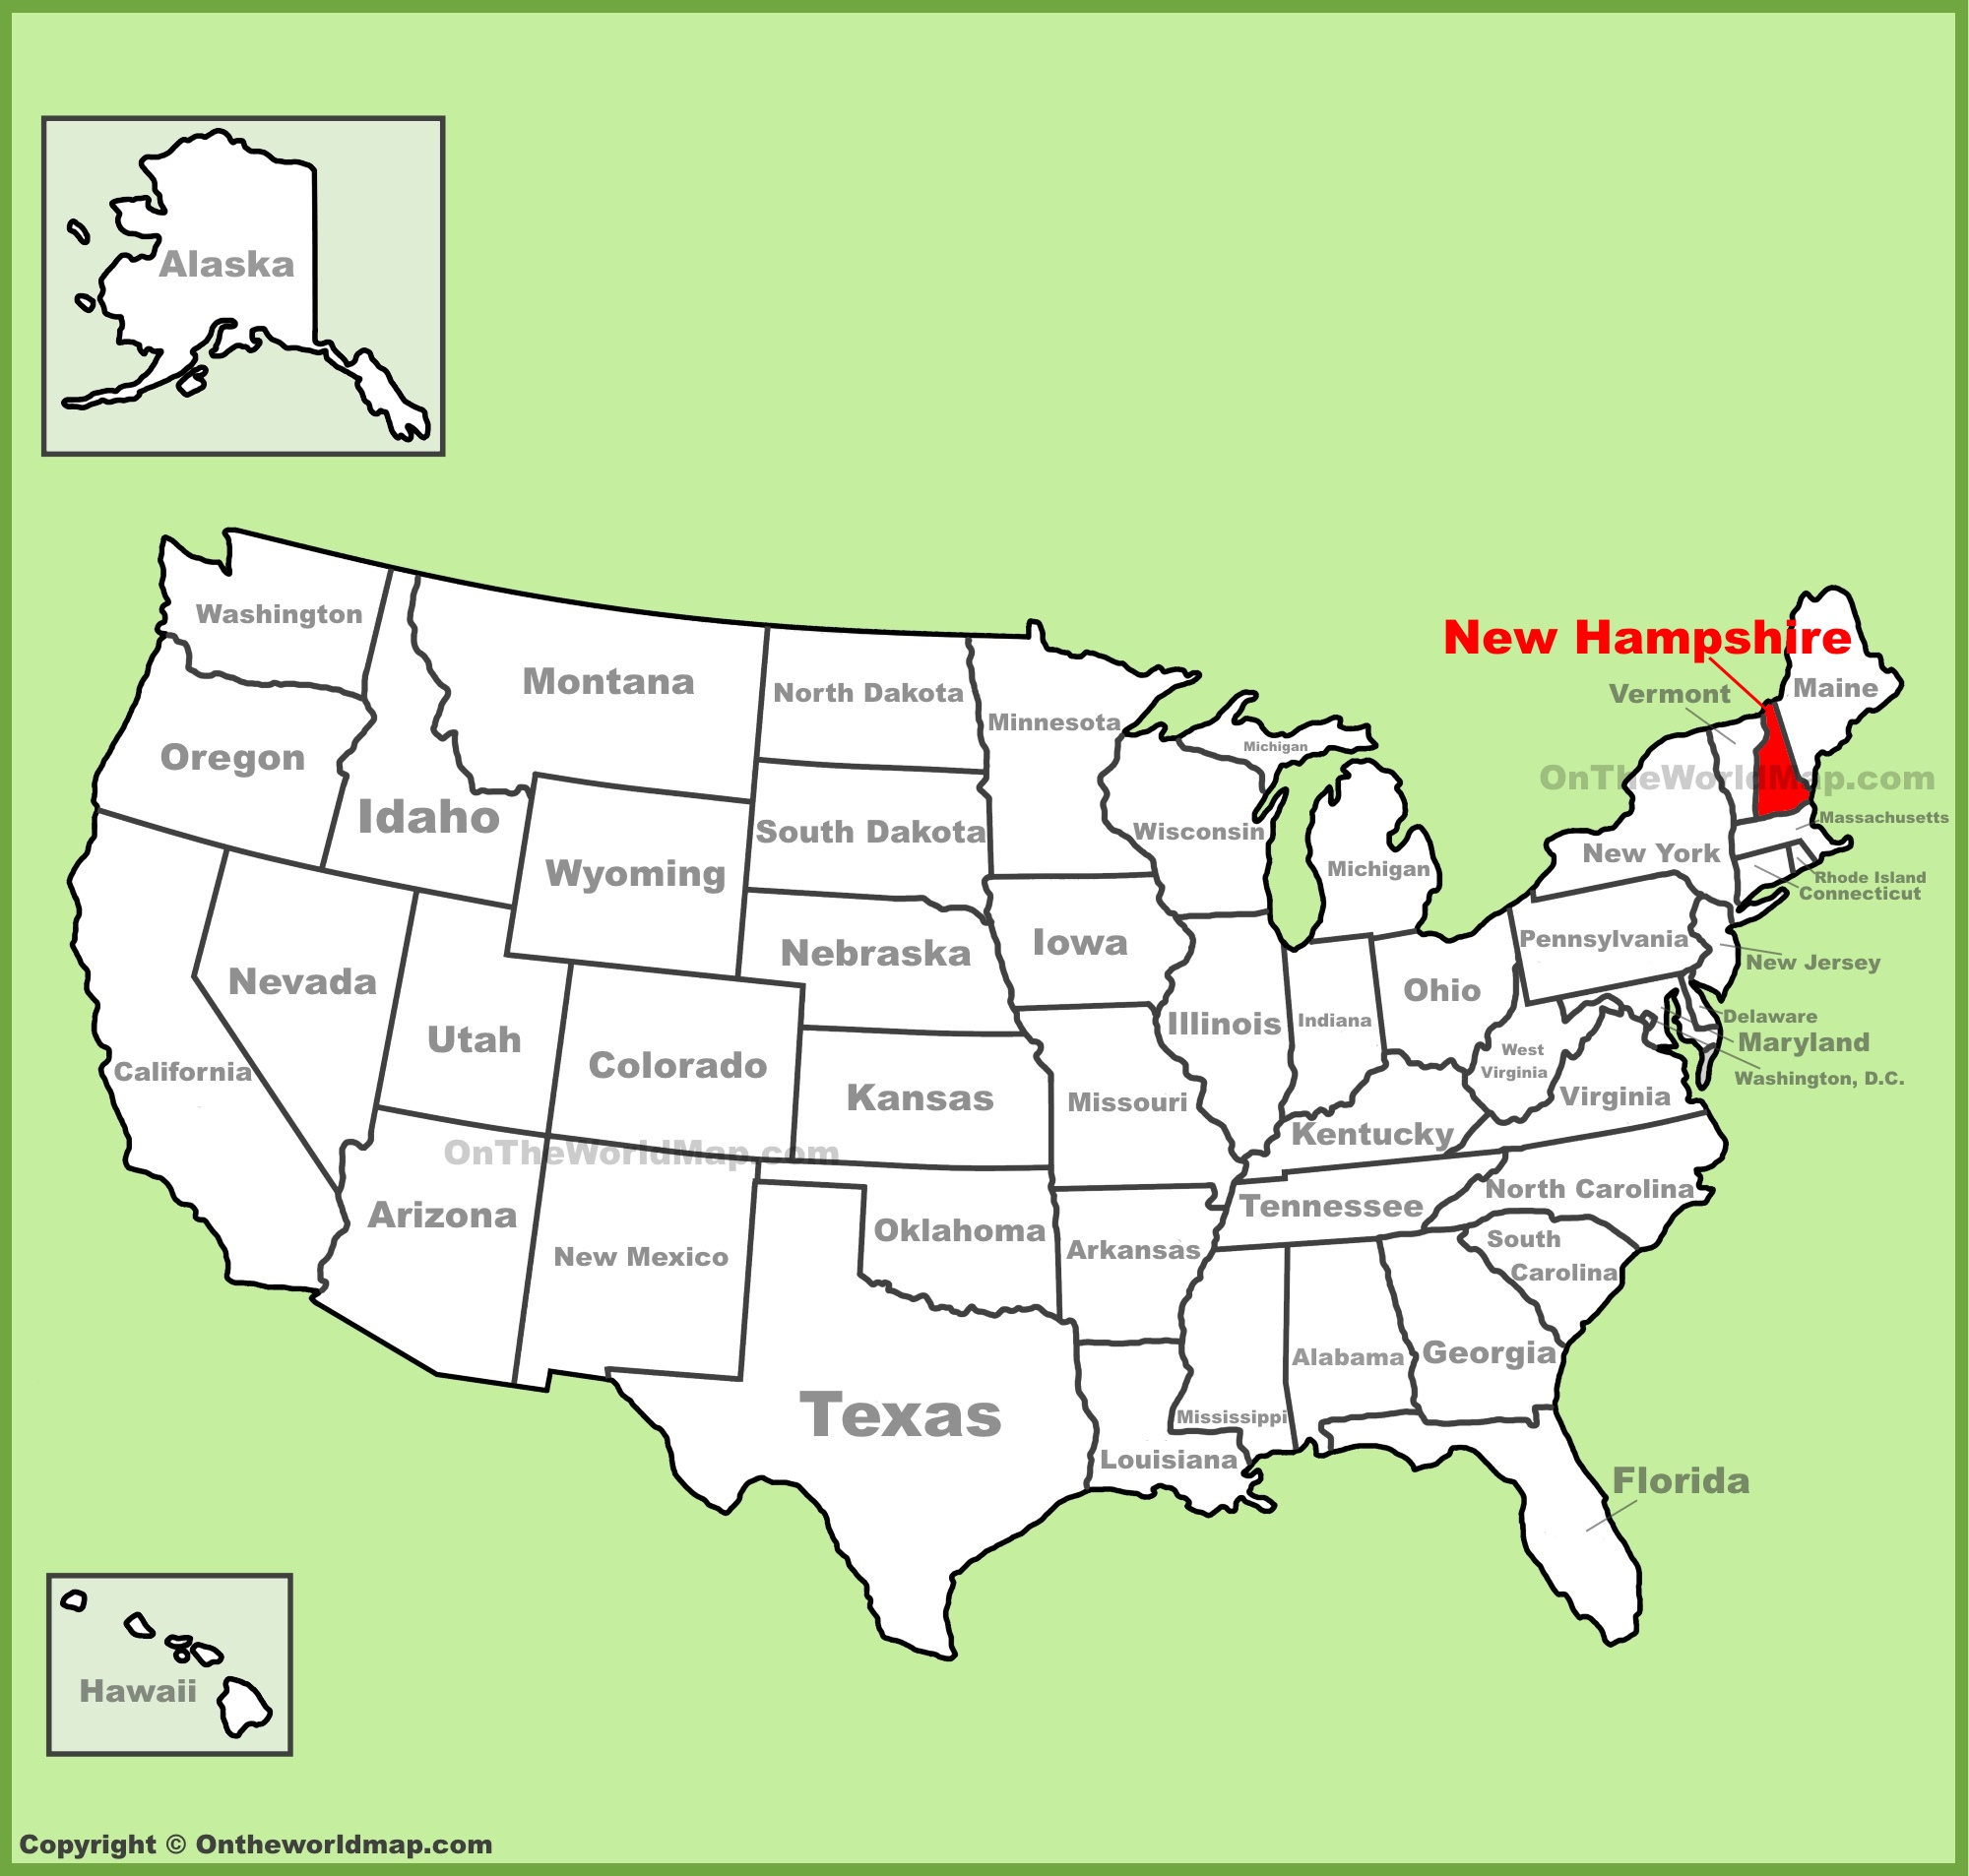 New Hampshire On Map Of Usa.New Hampshire Location On The U S Map